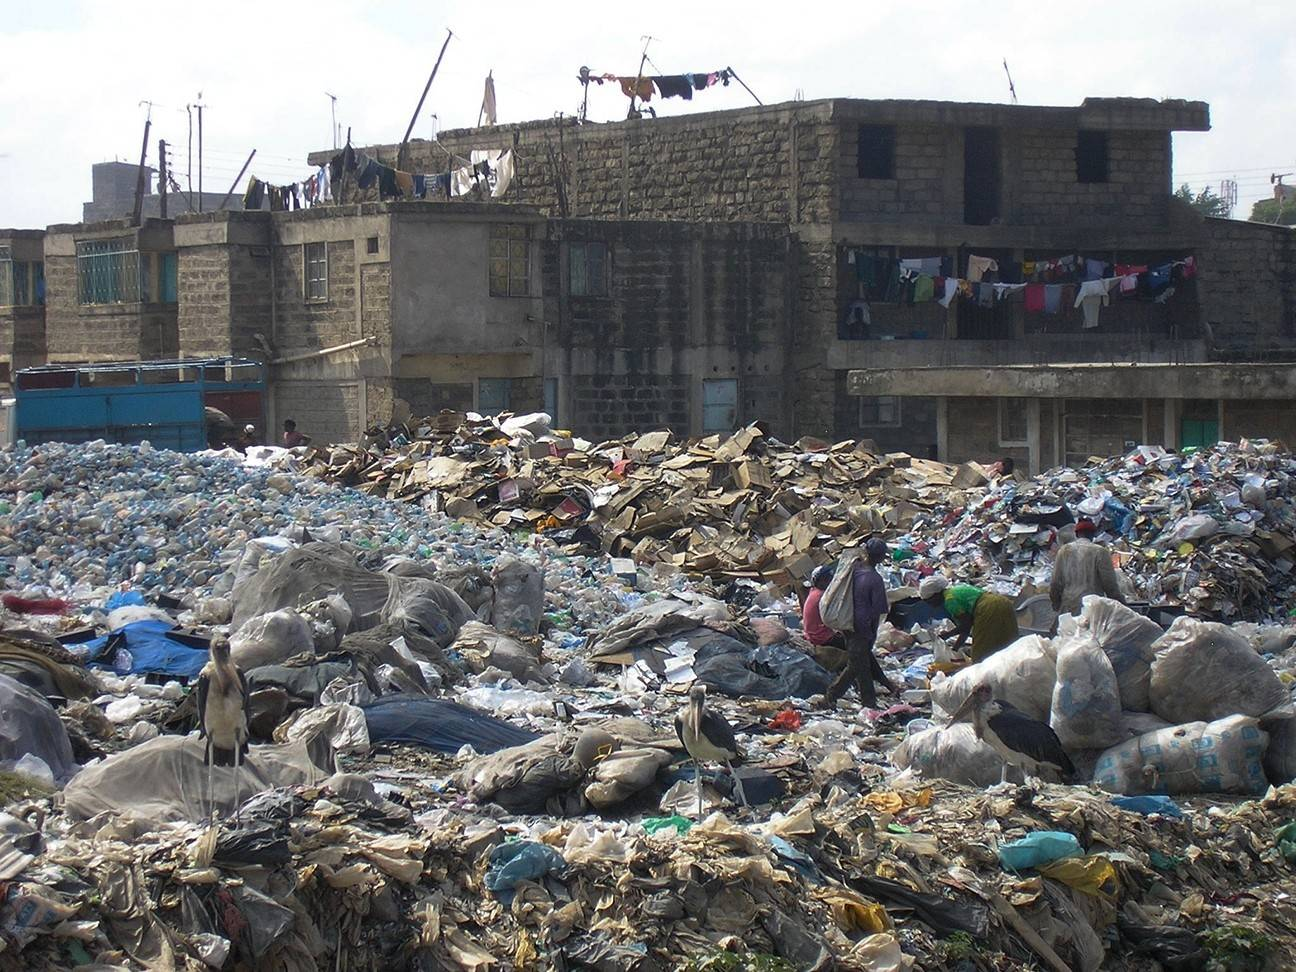 The dump in Nairobi's suburb of Dandora, Kenya, is home to thousands of people who pick through the trash daily to eke out a living.